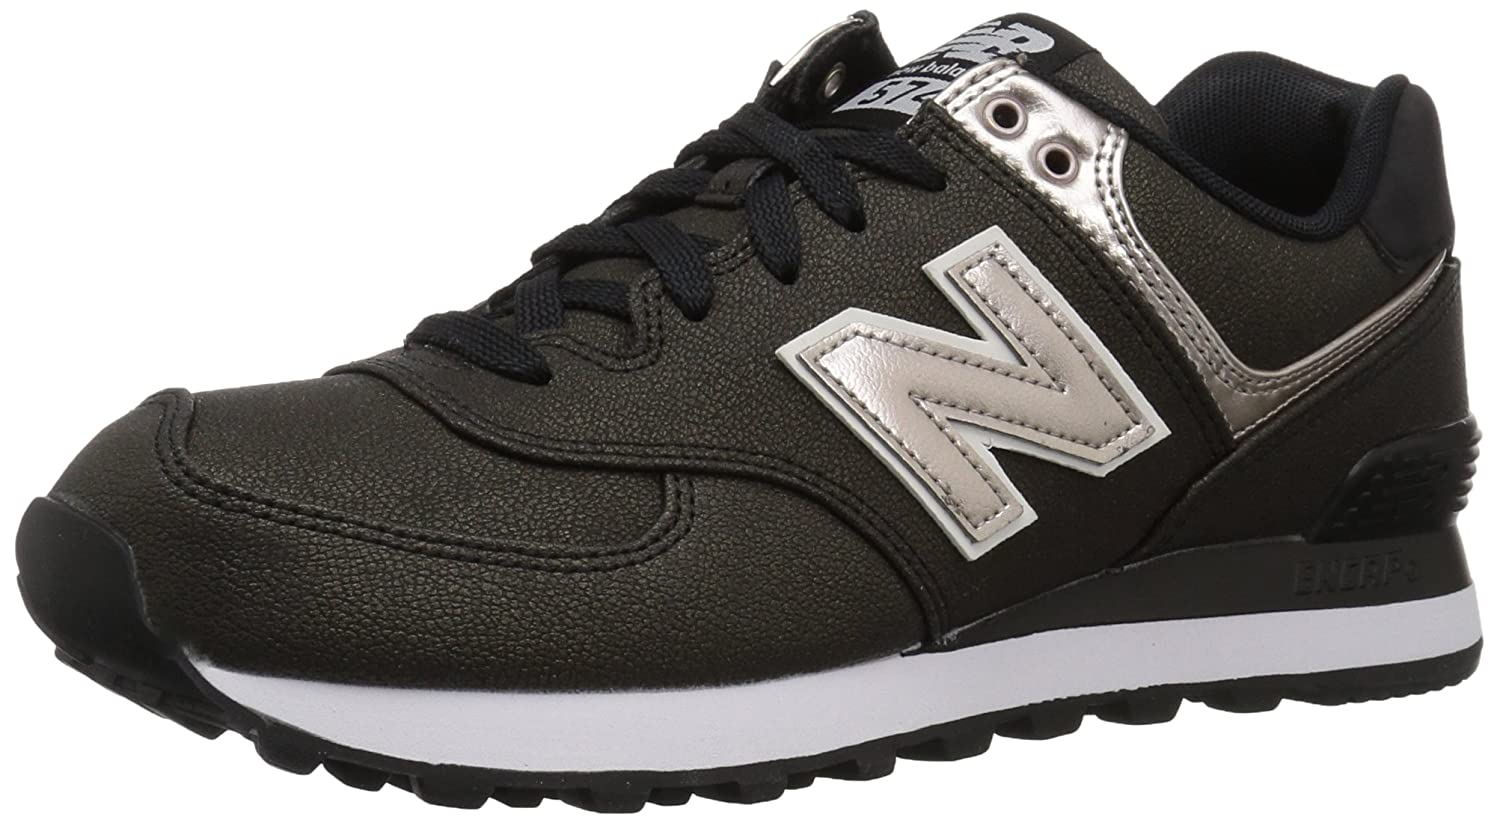 New Balance Women's 574v1 Sneaker B01N5XE9UK 8.5 B(M) US|Black/Champagne Metallic